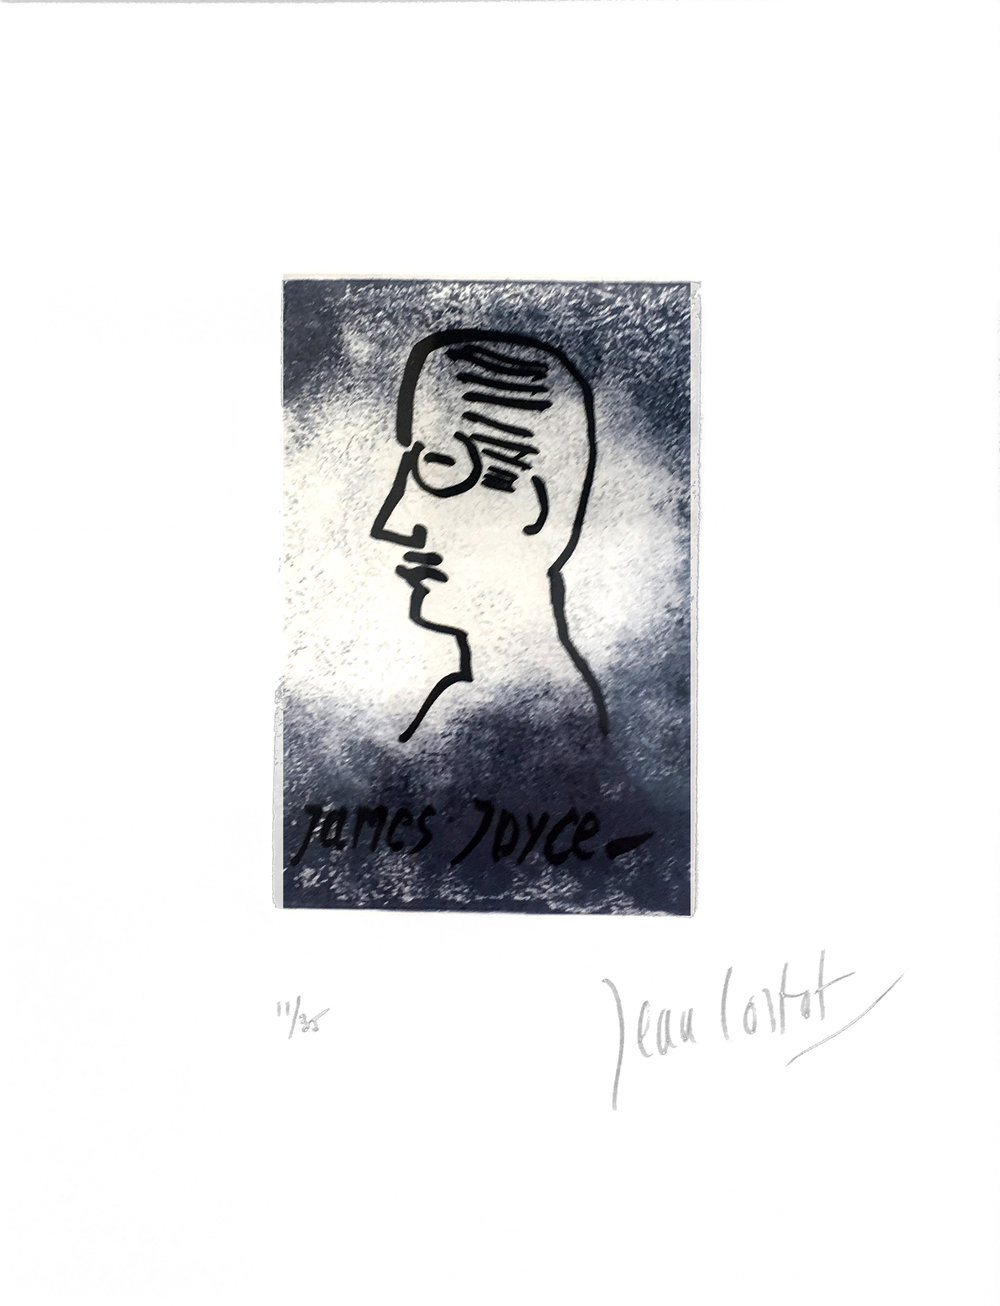 James Joyce,  Original Etching, 2015, 13 x 10 in. Signed and Numbered 11/ 35.